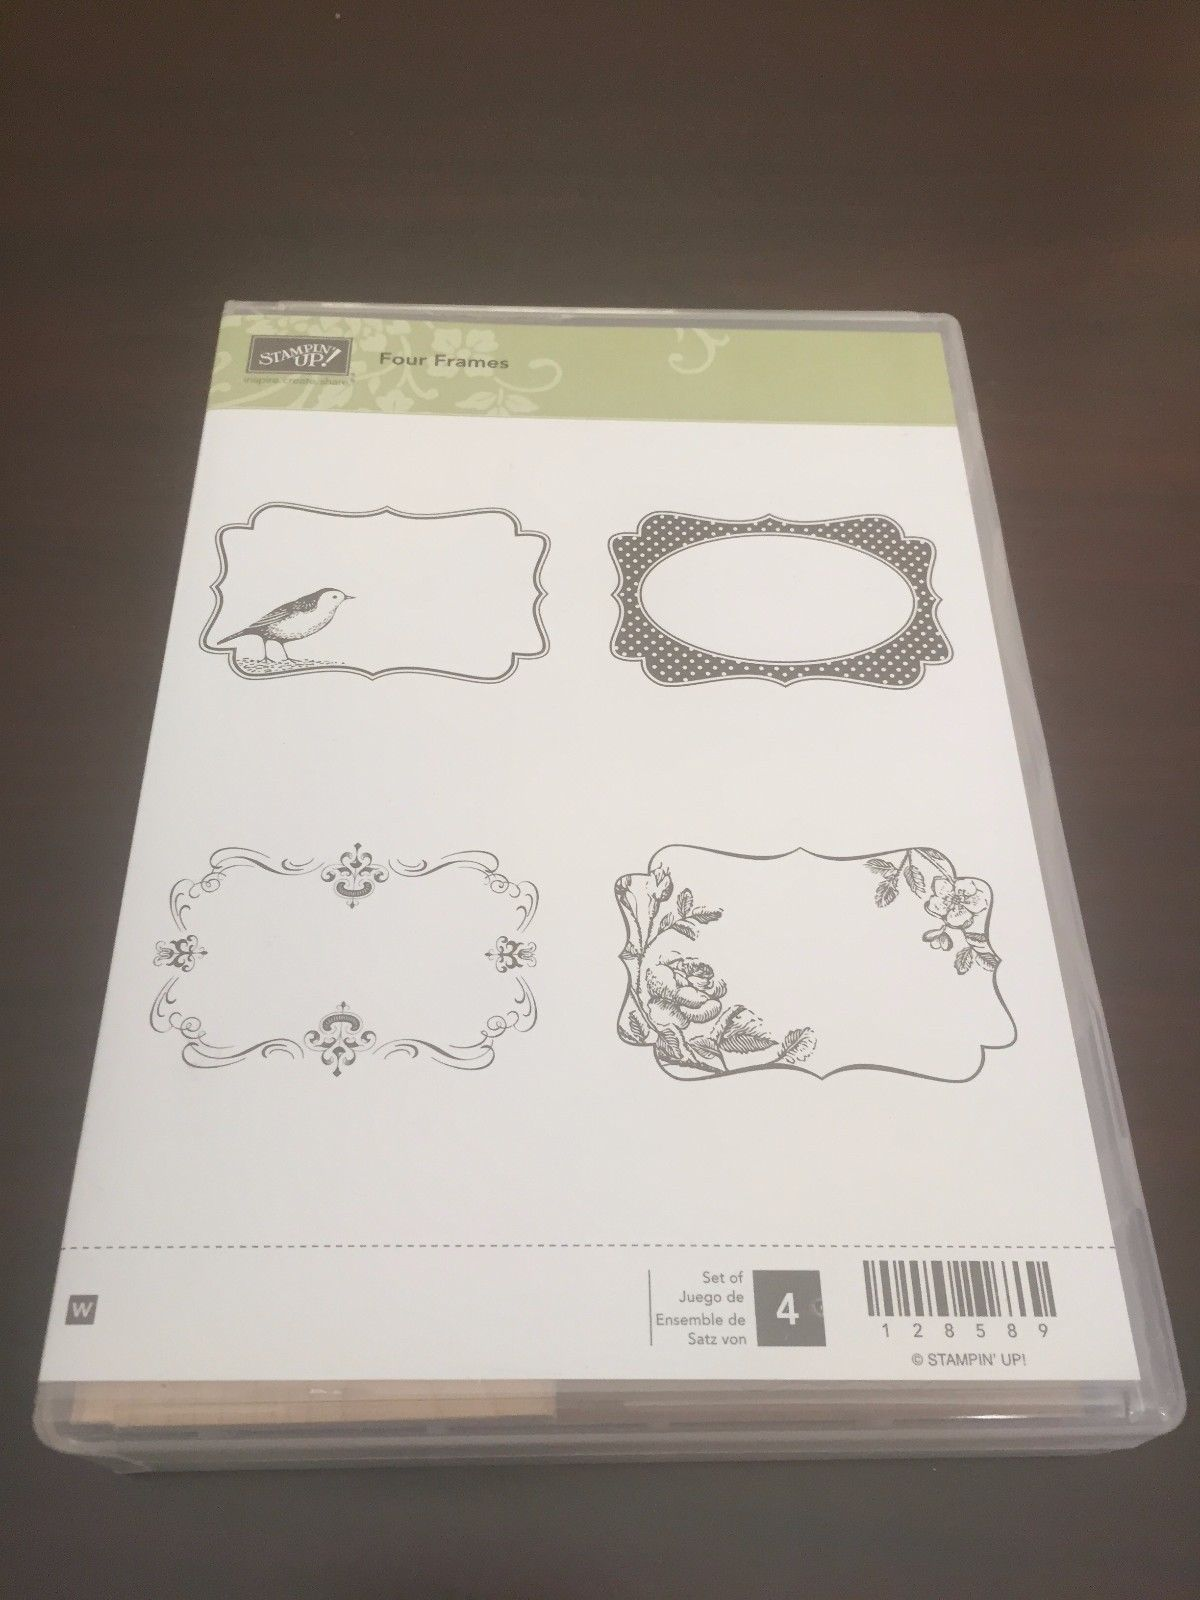 Primary image for Stampin' Up! Four Frames Wood Mount Stamp Set! FREE SAME DAY SHIPPING